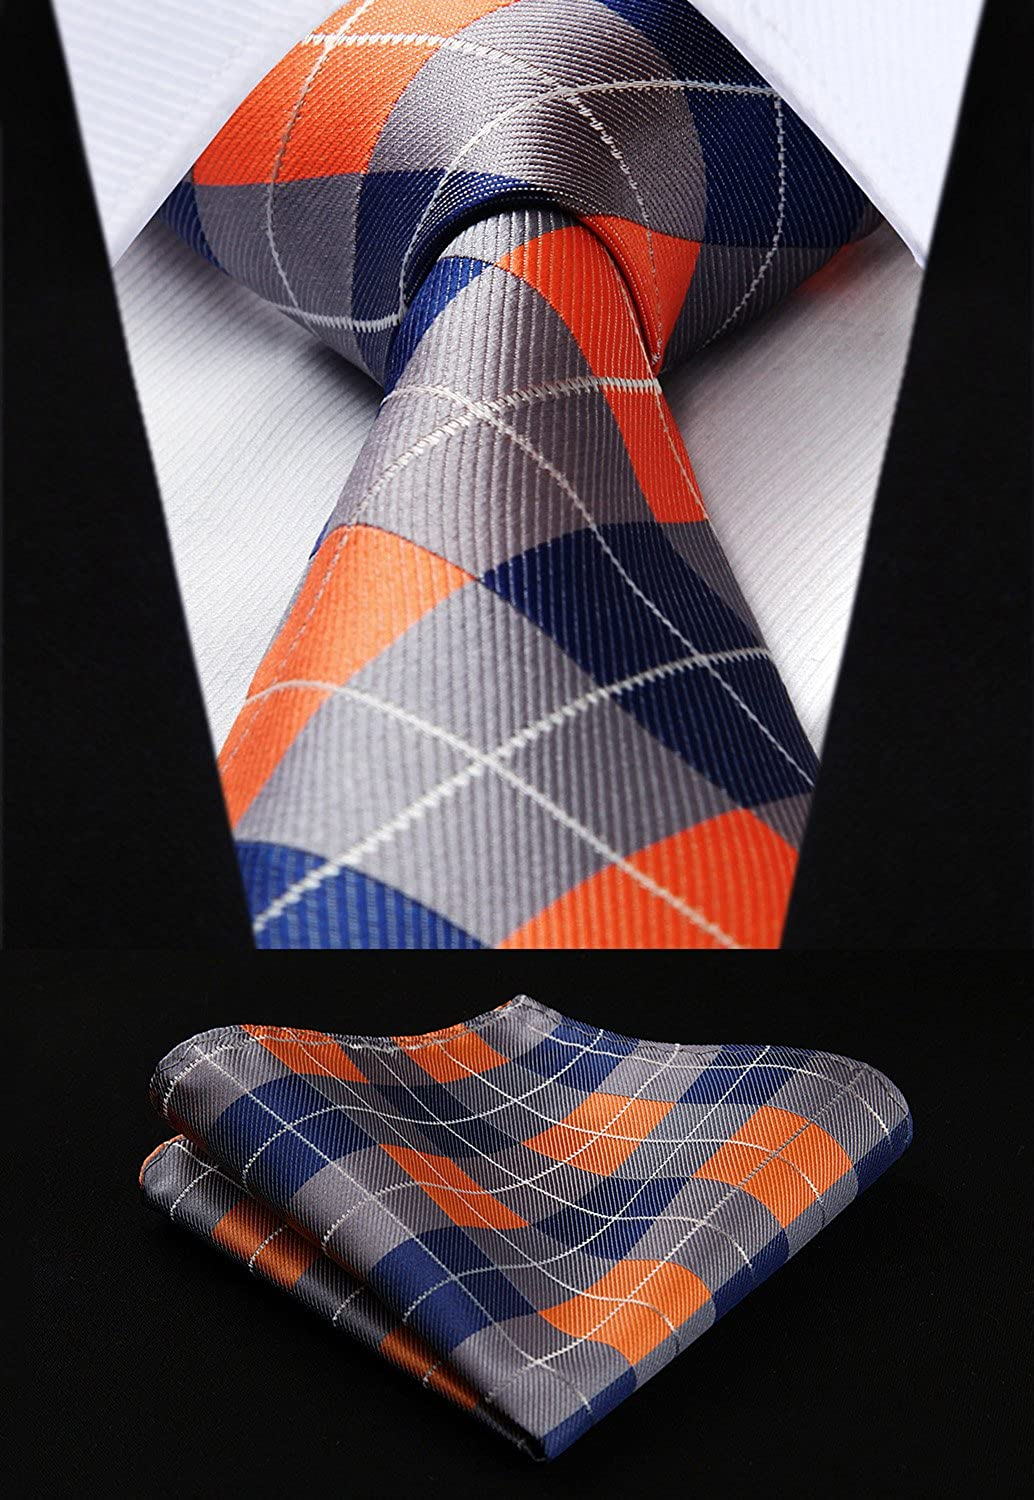 HISDERN Extra Long Check Tie Handkerchief Men's Necktie & Pocket Square Set